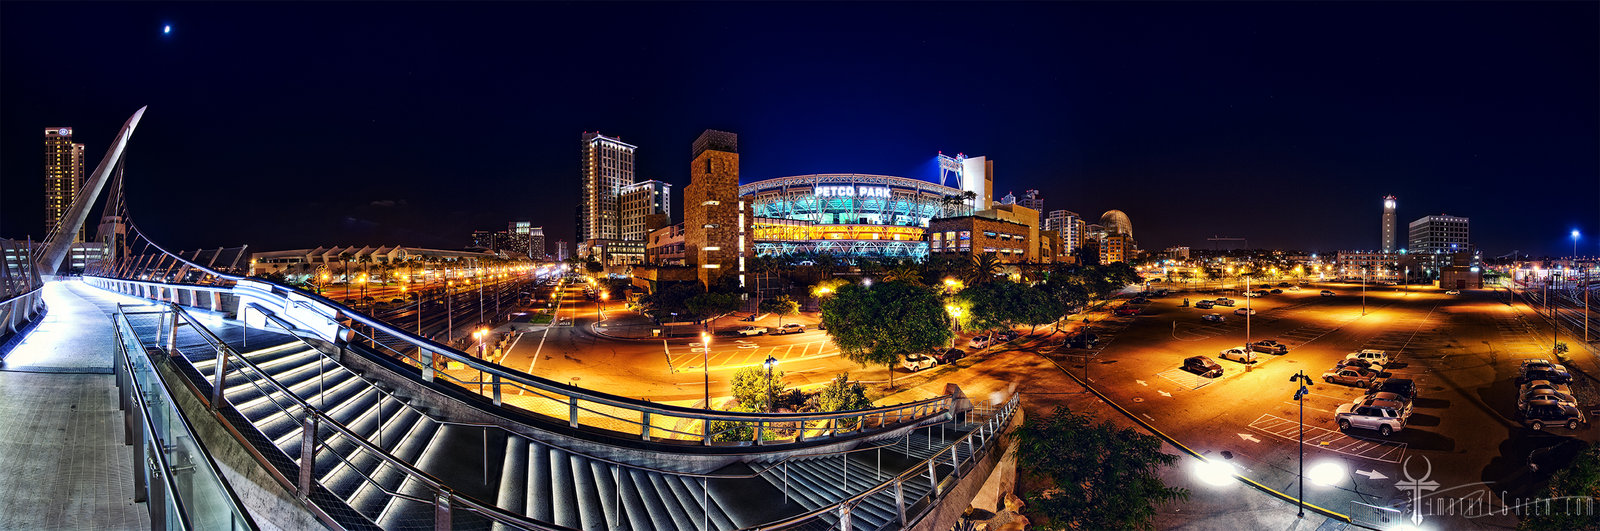 Petco Park from Harbor Drive Bridge by timothylgreen 1600x531